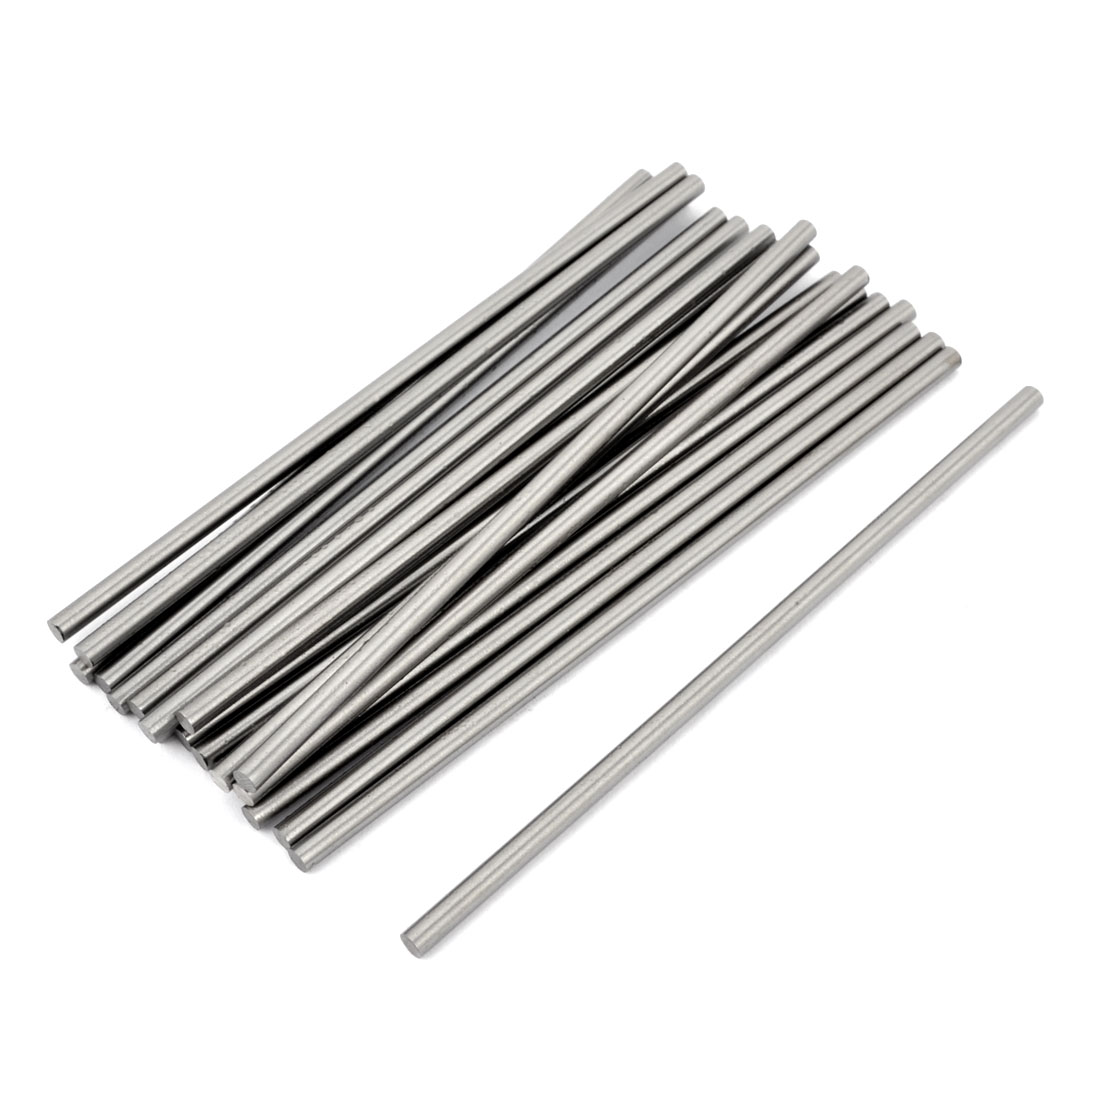 20pcs High Speed Steel Round Turning Lathe Carbide Bars 3mm x 100mm